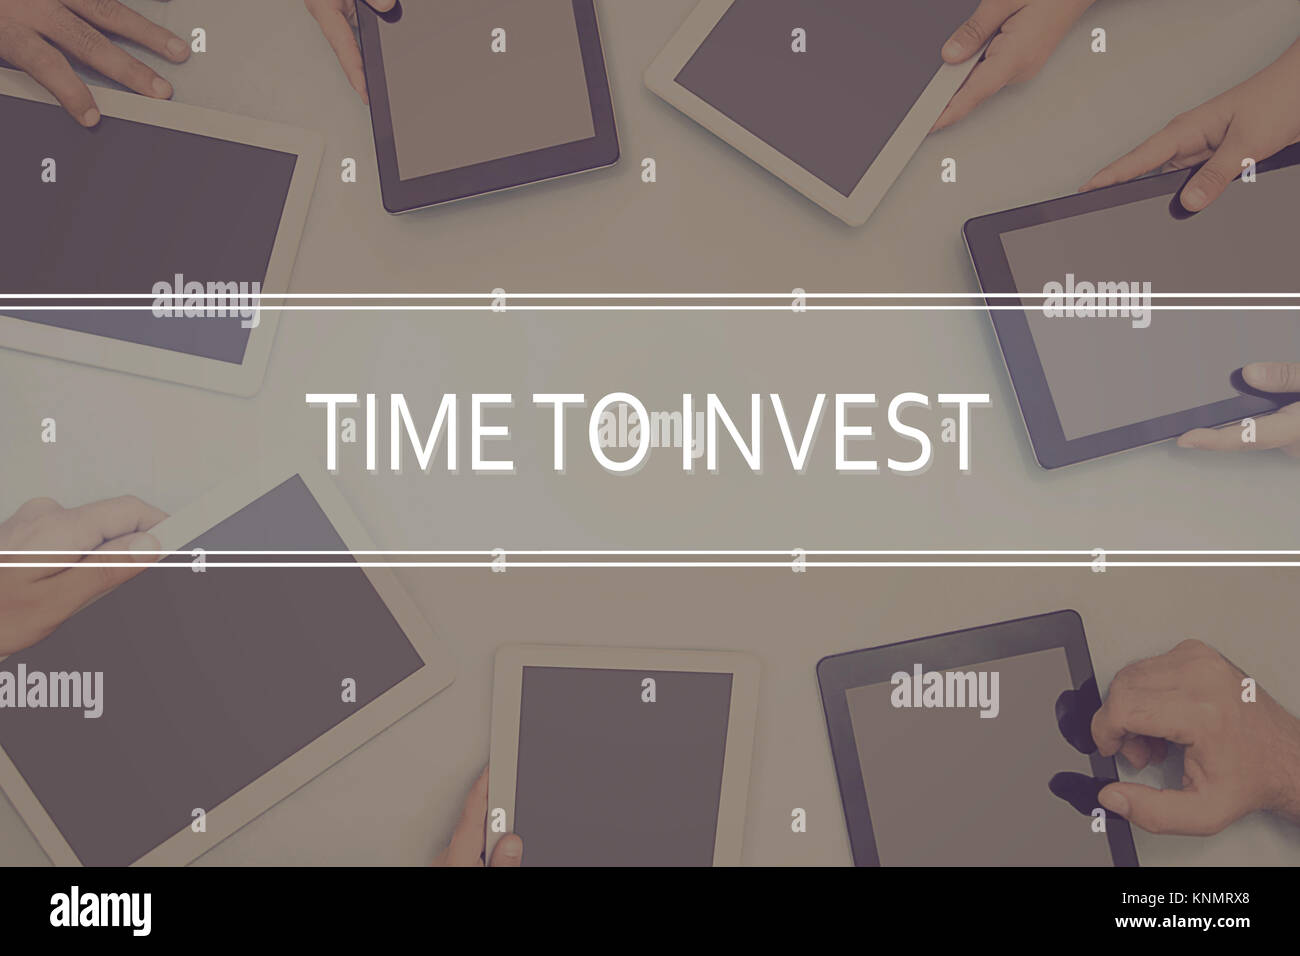 TIME TO INVEST CONCEPT Business Concept. - Stock Image